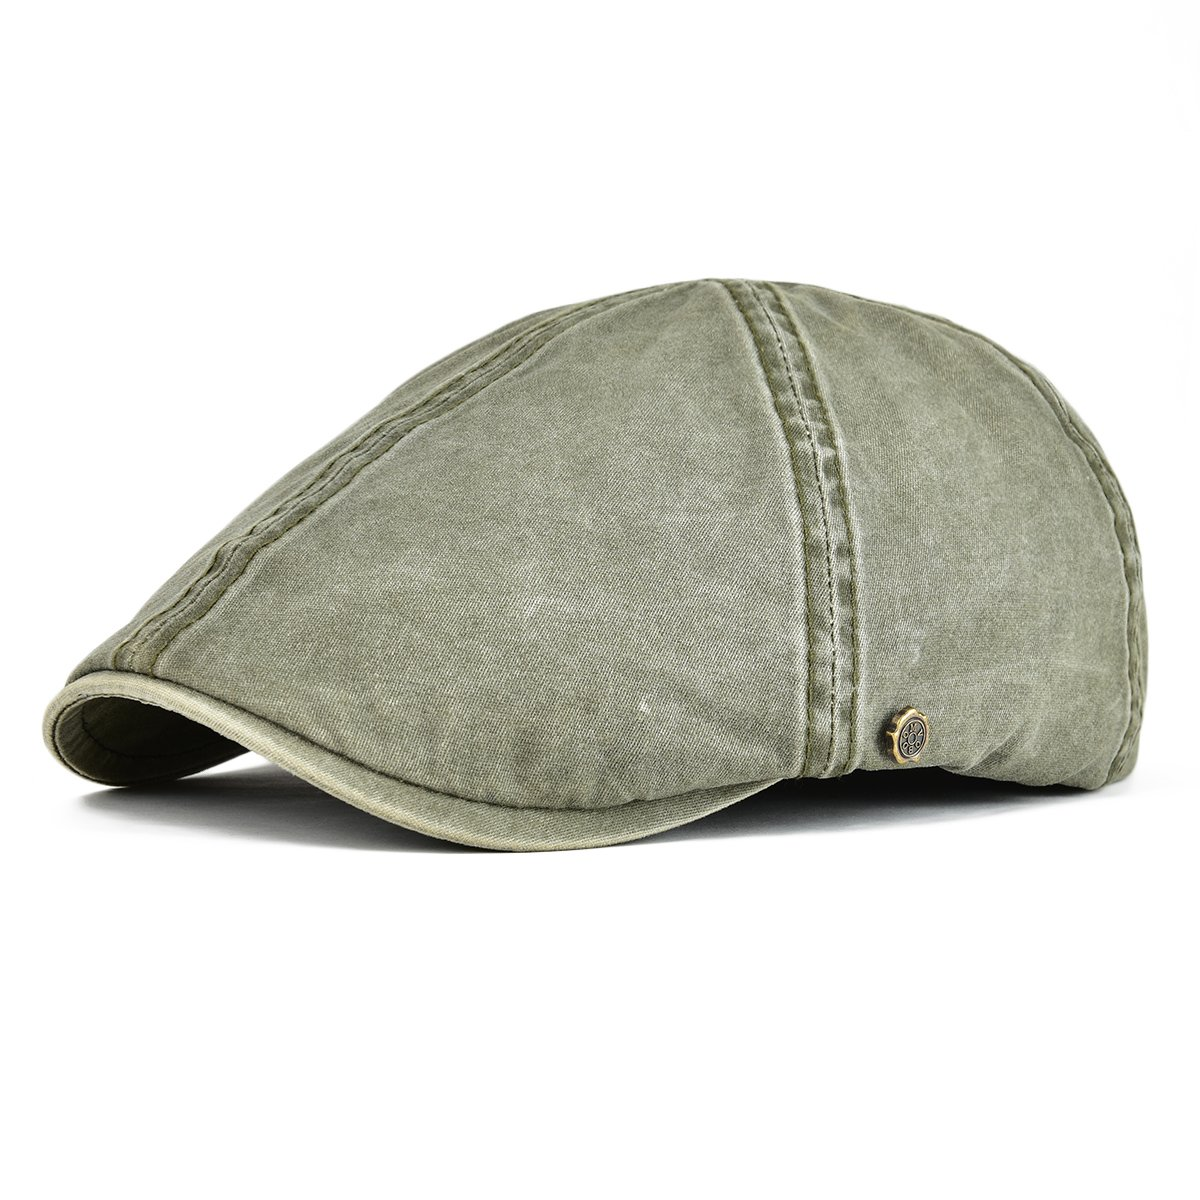 69b6132c63c VOBOOM Ivy Caps 100% Cotton Washed Plain Flat Caps Newsboy Caps Cabbie hat  at Amazon Men s Clothing store